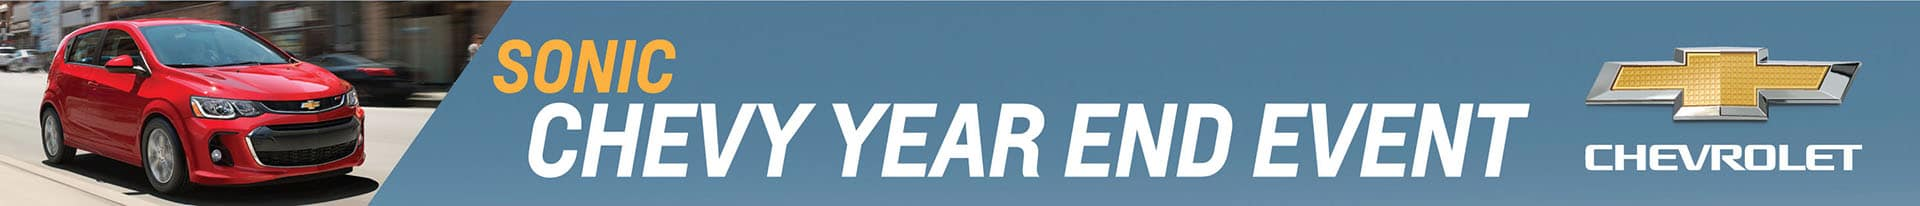 Chevrolet Sonic Year End Event Banner